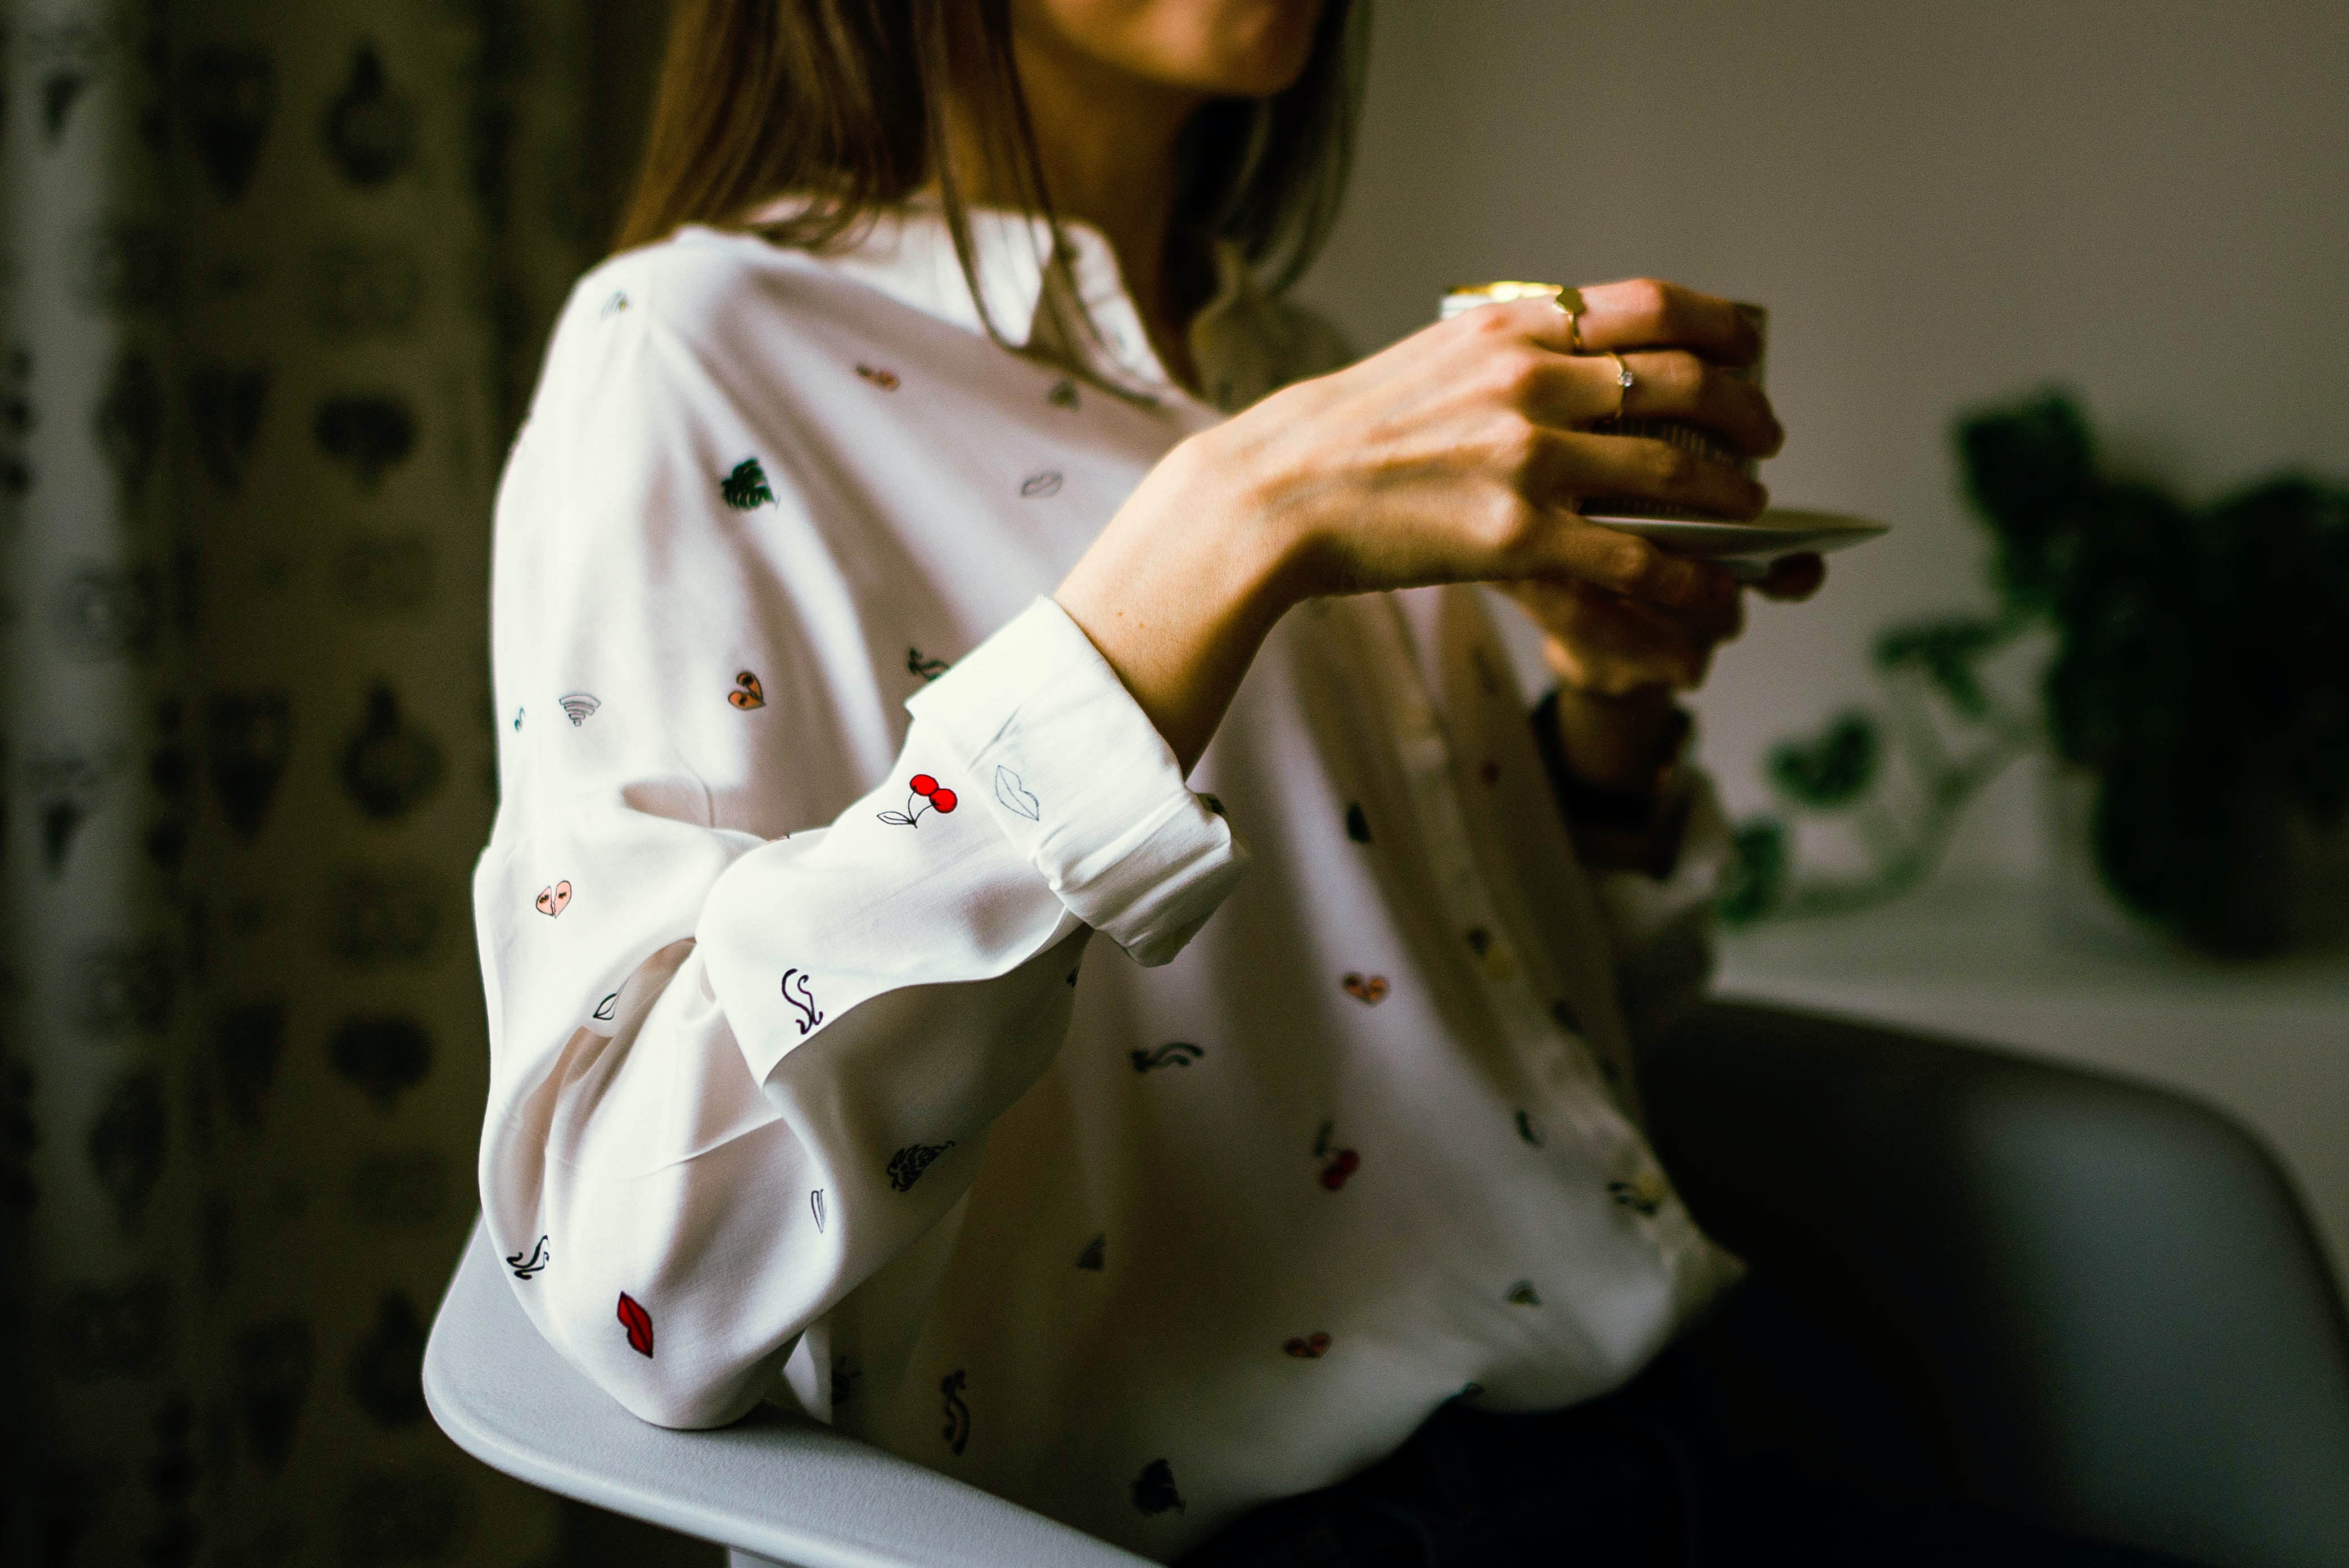 woman in white long-sleeved collared shirt holding teacup